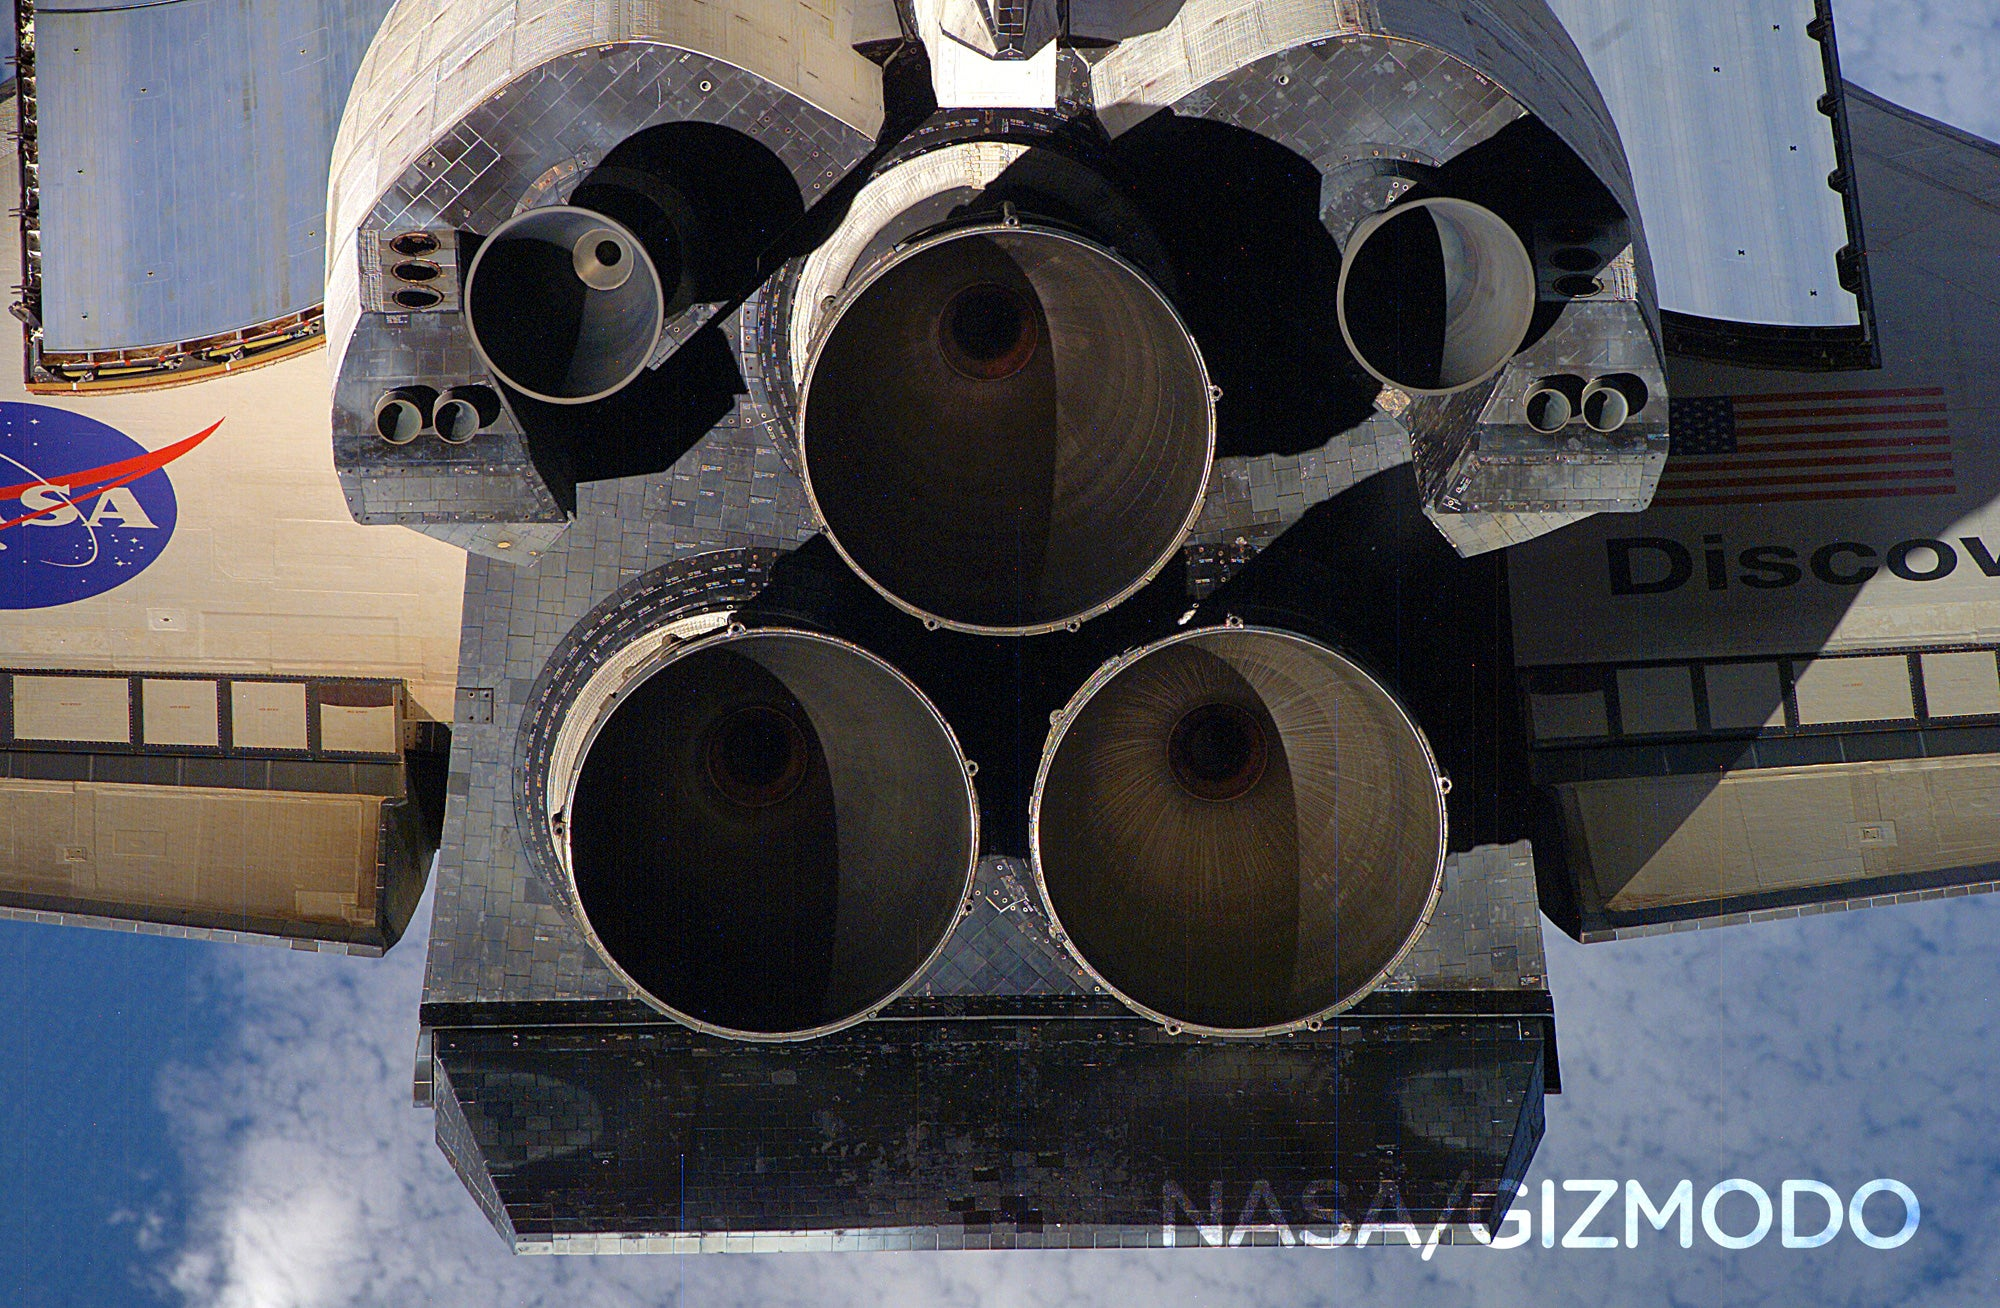 space shuttle srb engines - photo #41